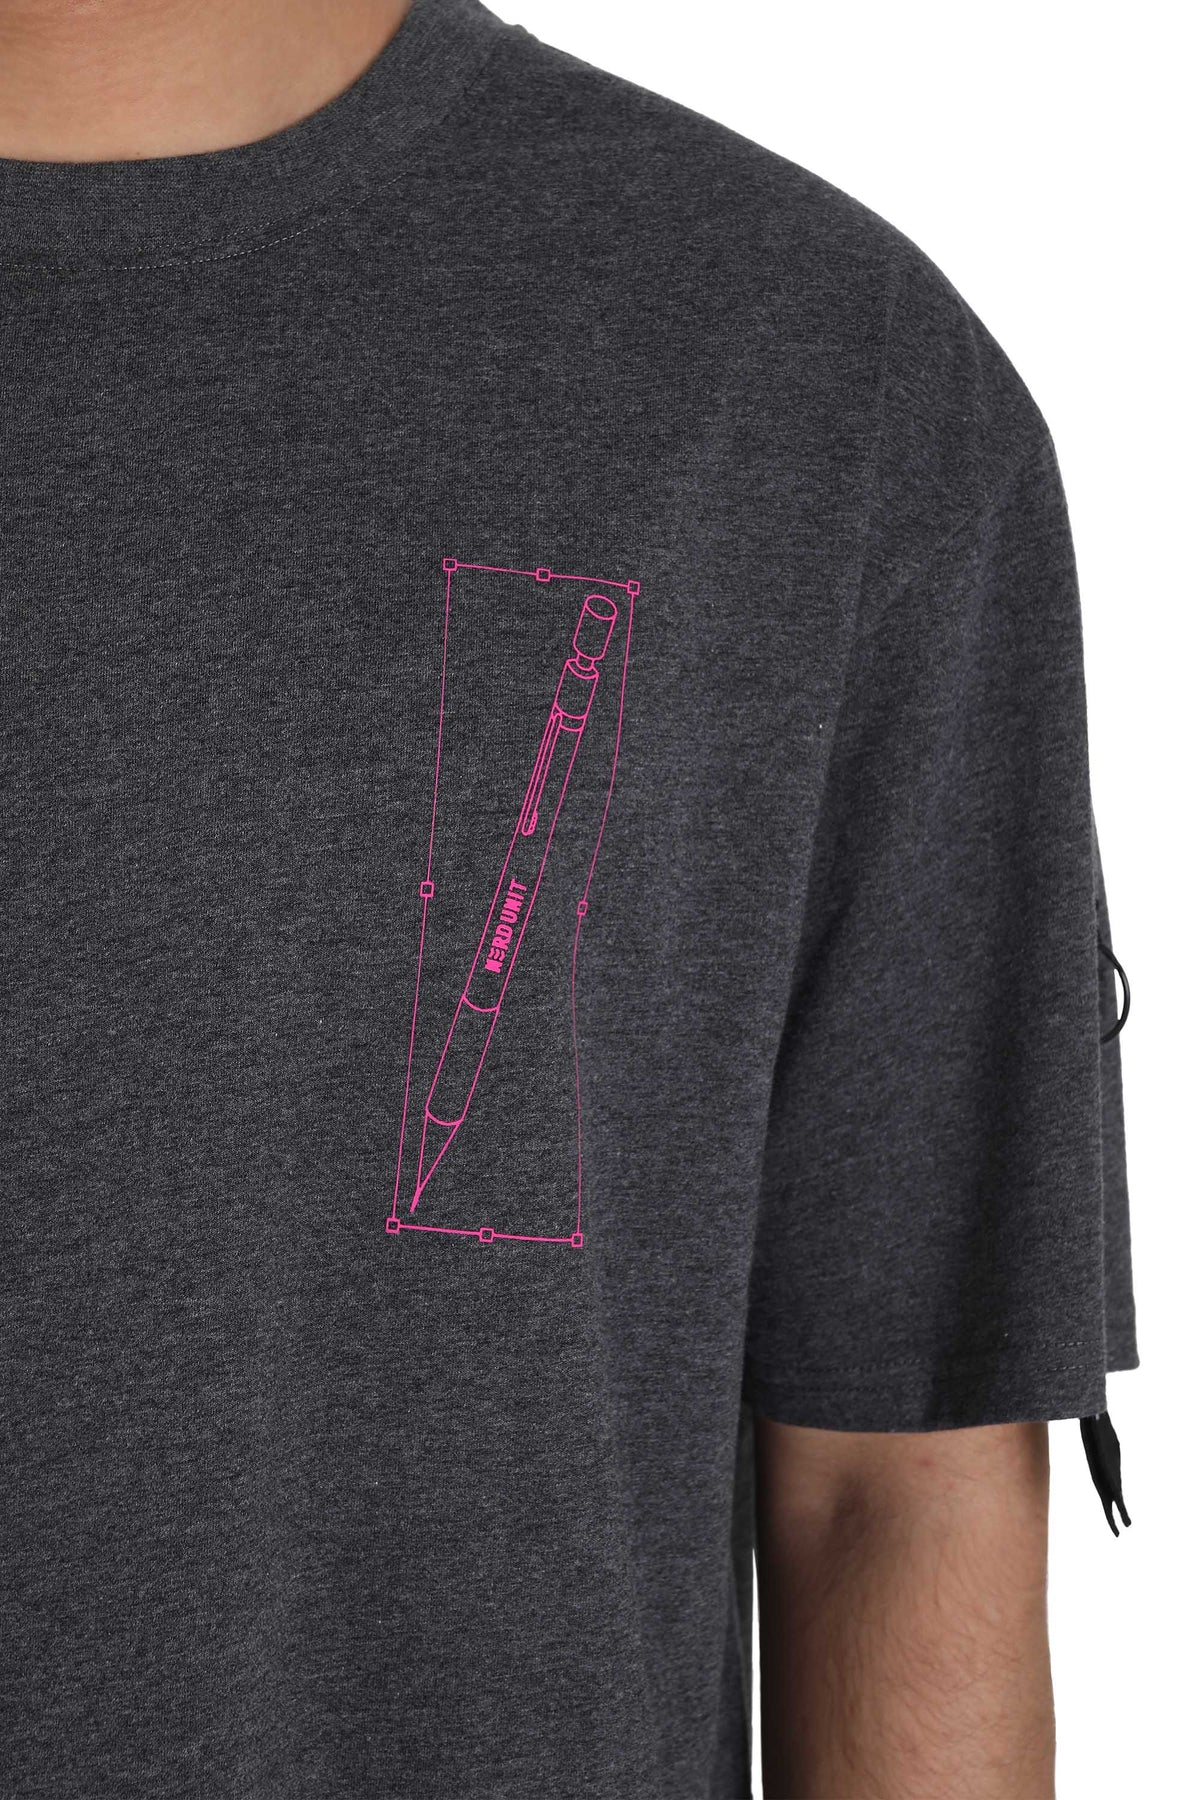 MECHANICS TEE | DARK MELANGE